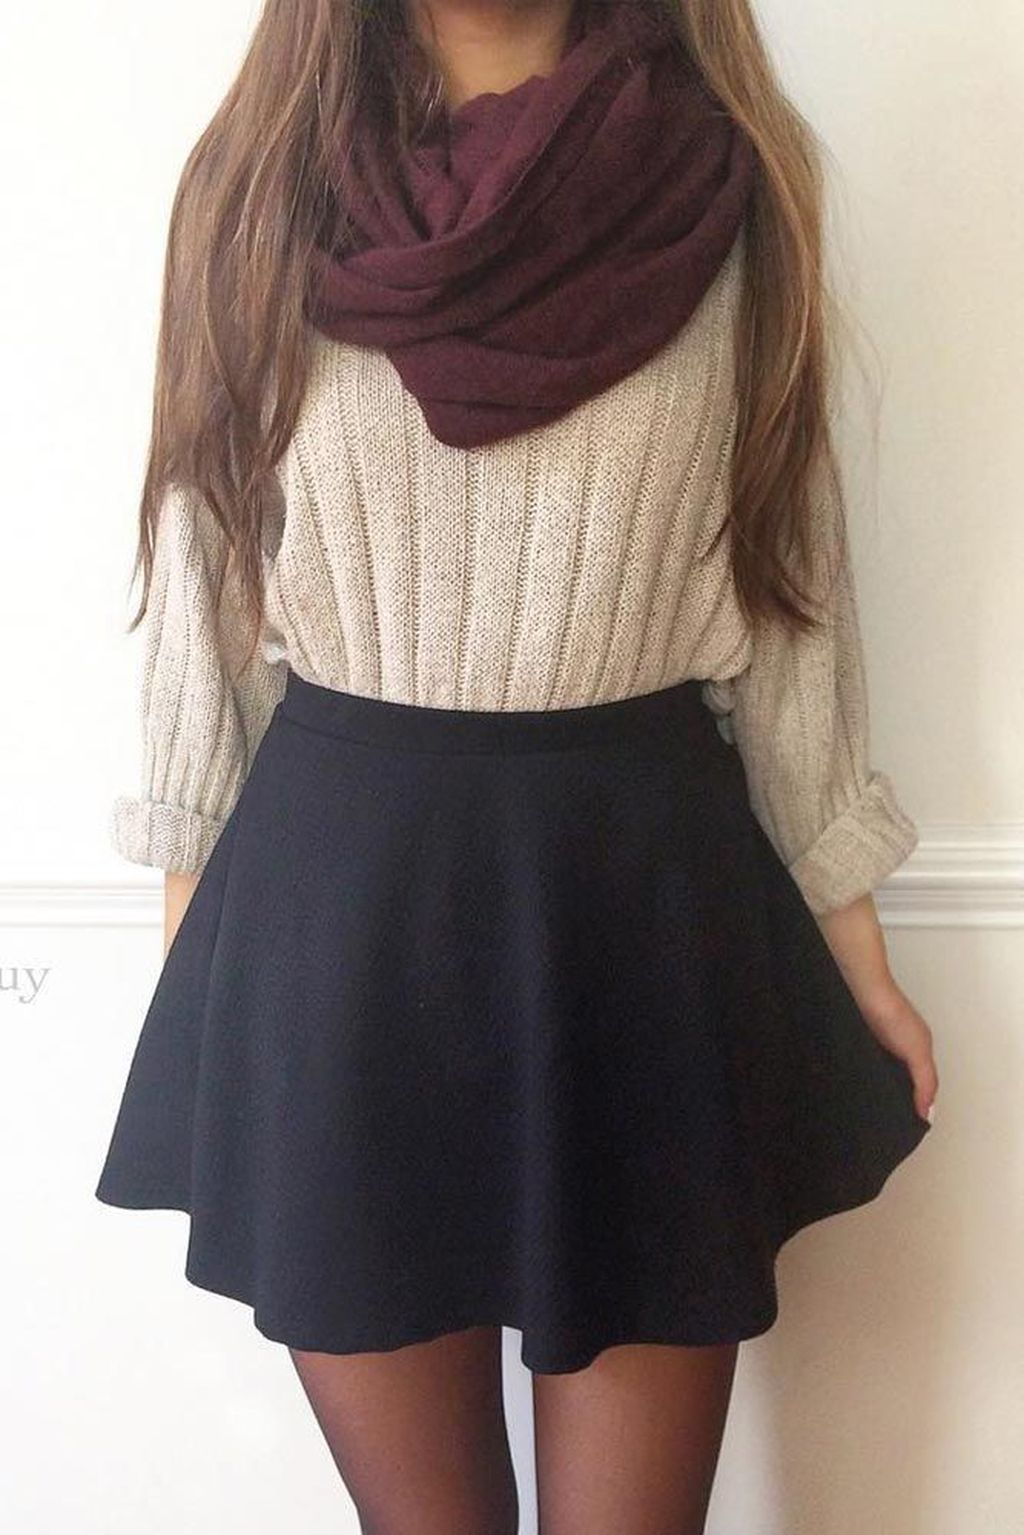 Pin by Lydia Rubio on Outfits | Outfits, Cute teen outfits ...